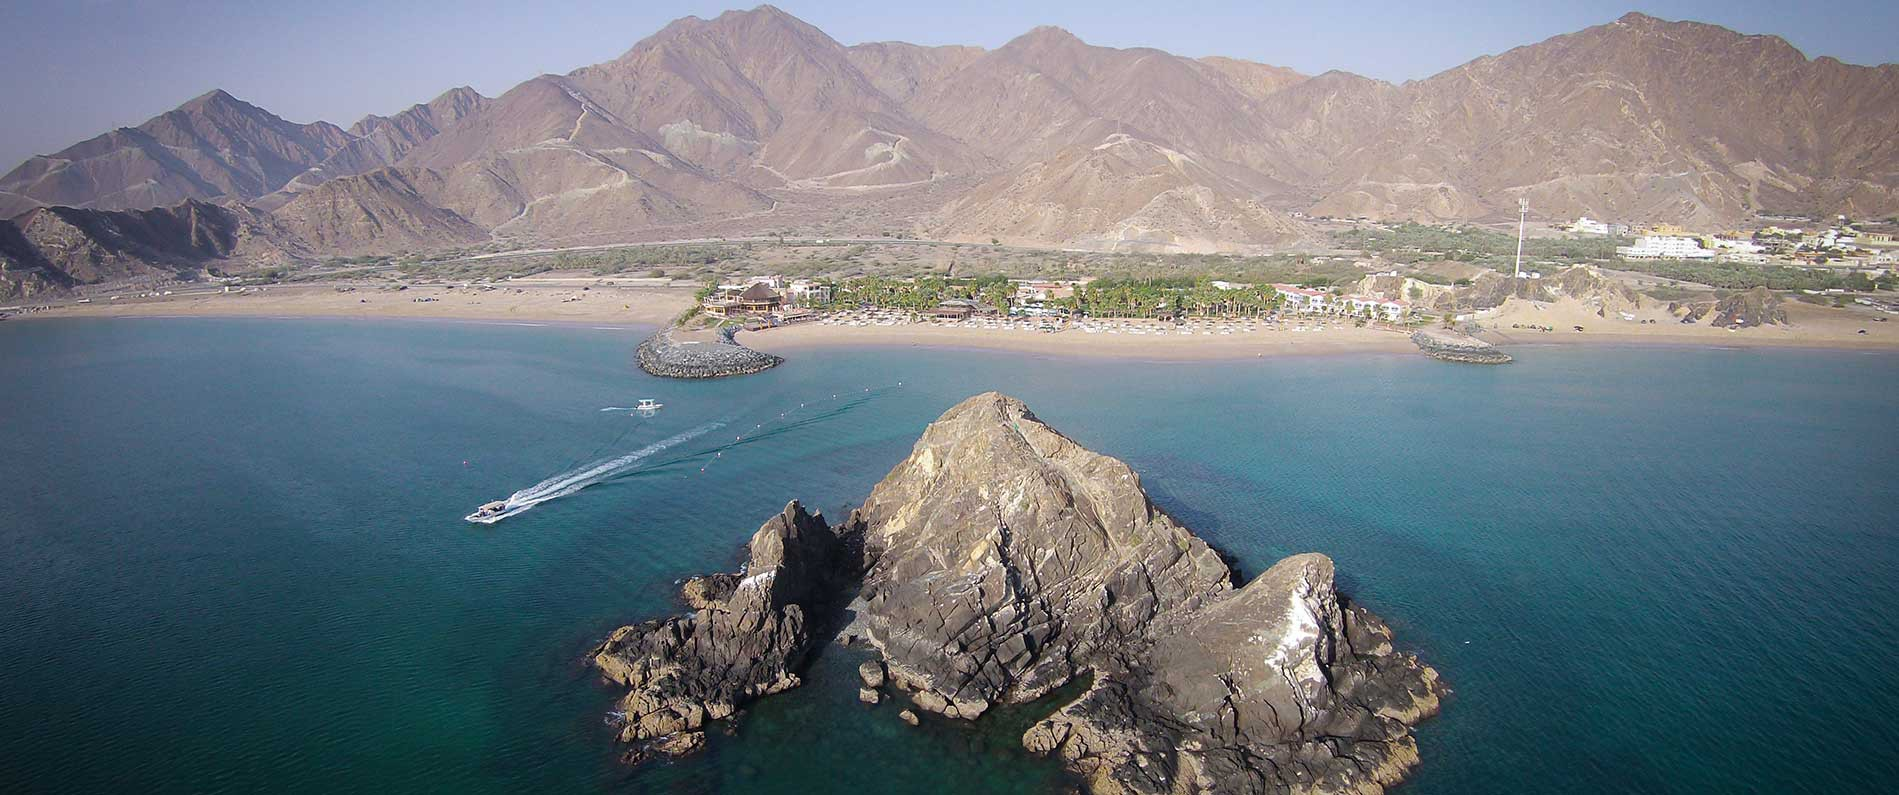 List of Free Zones in Fujairah